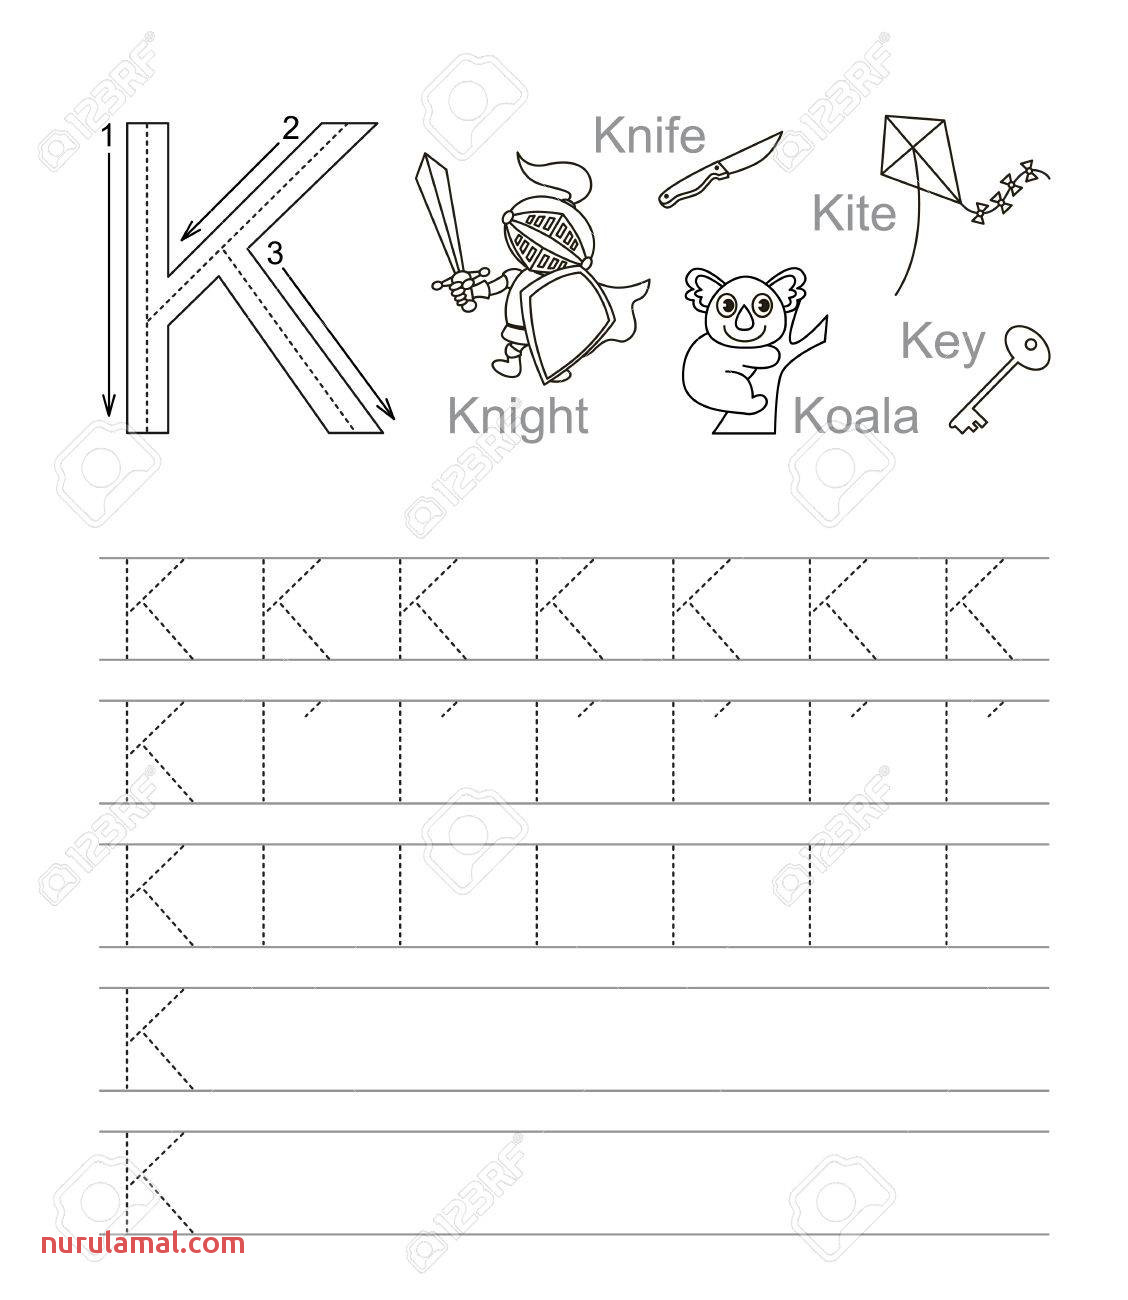 Letter Worksheet Tracing Worksheetstable Coloring Book